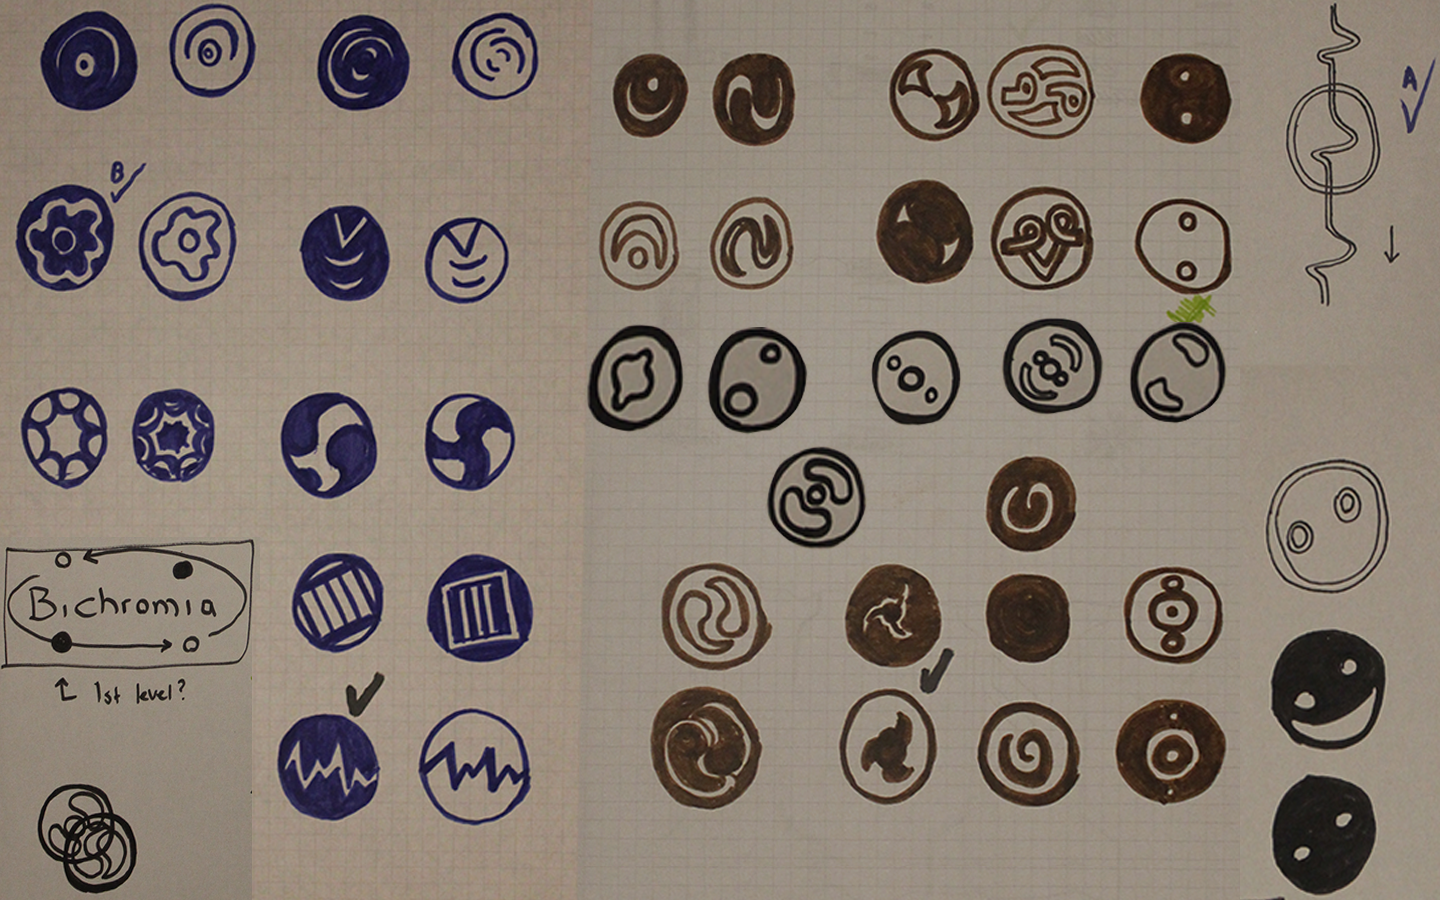 Early character icon designs for Bichromia